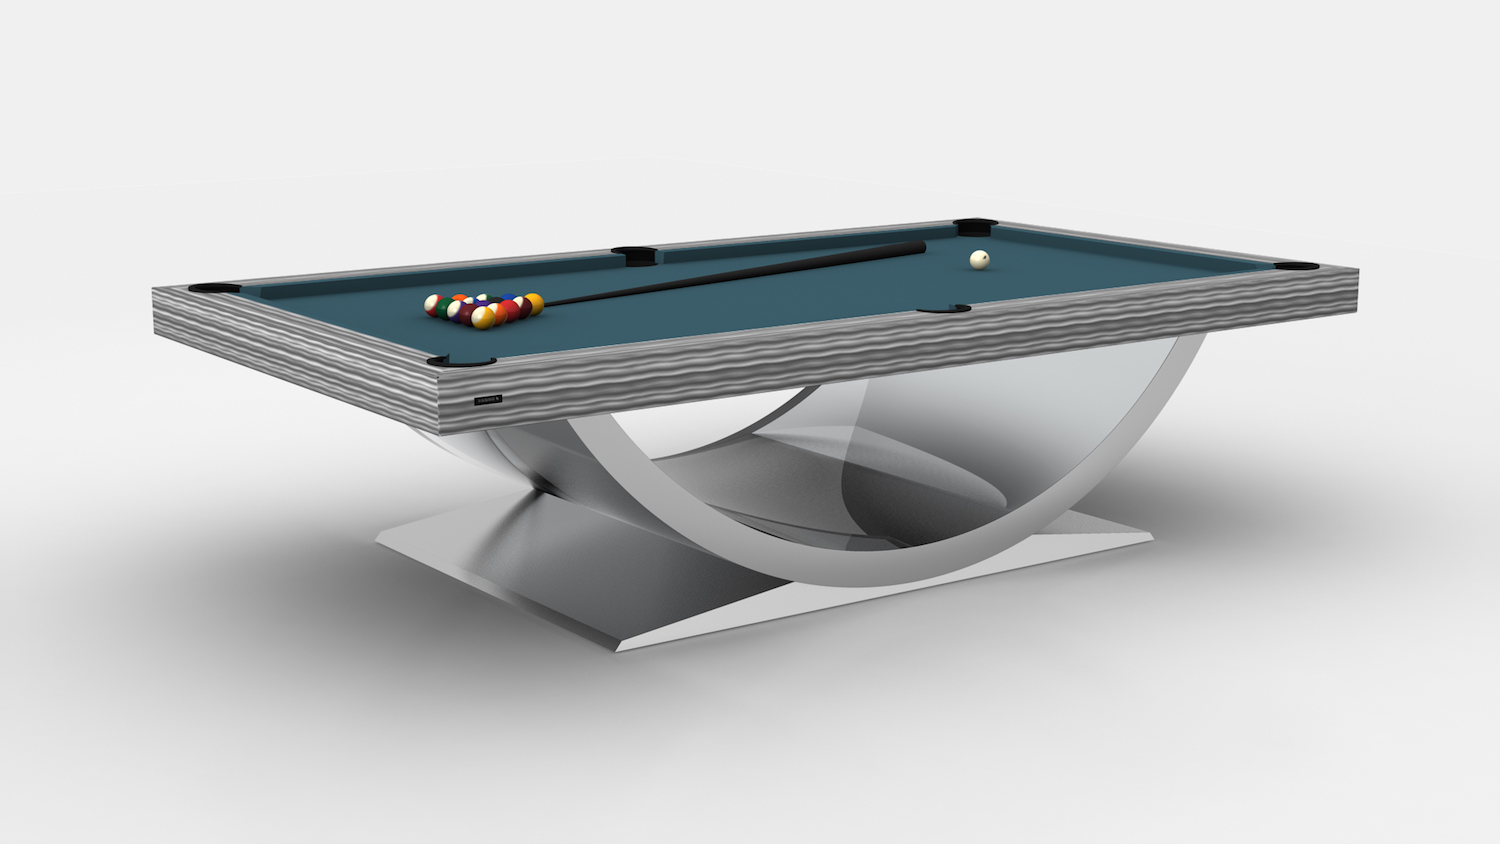 theseus-billiards-chem452_02A1.jpg